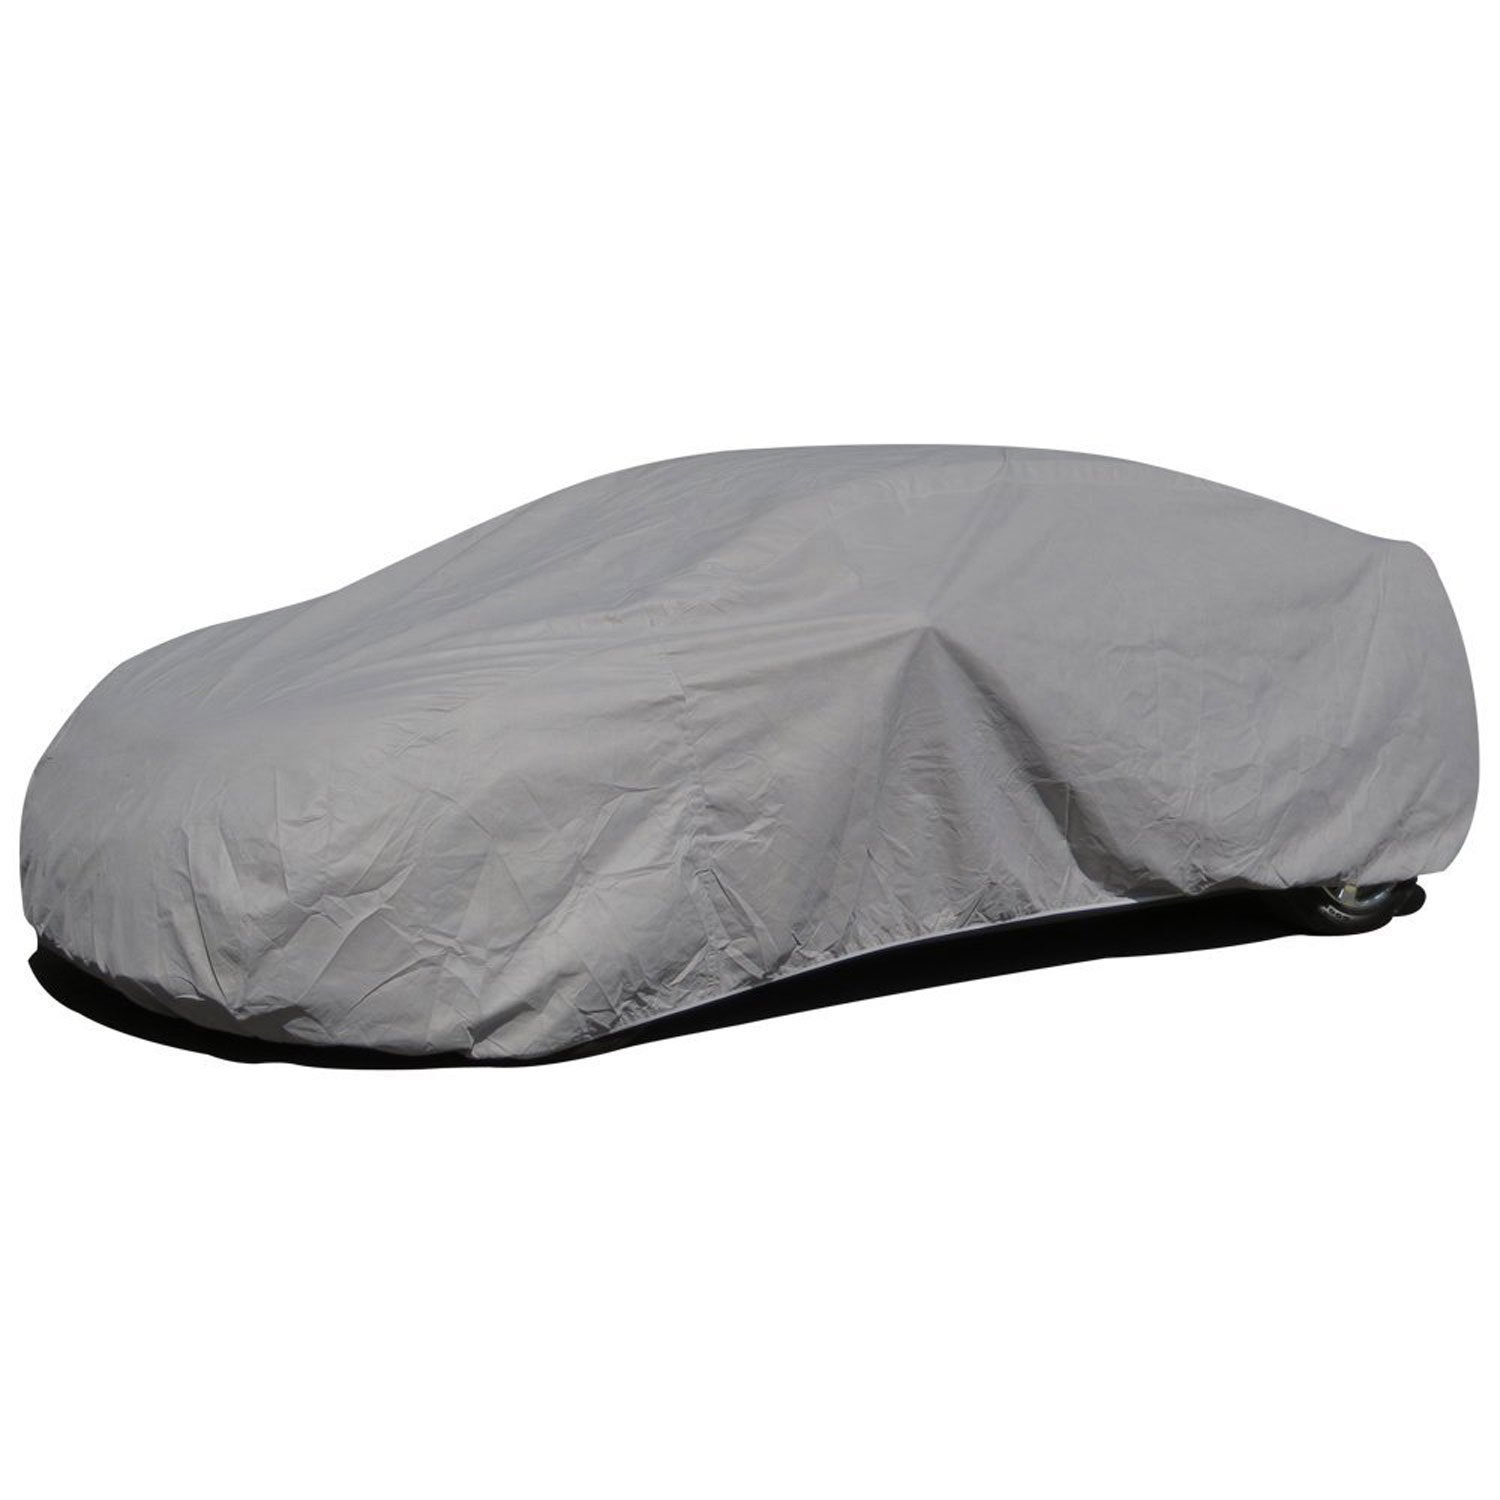 1-budge-lite-car-outdoor-cover-200